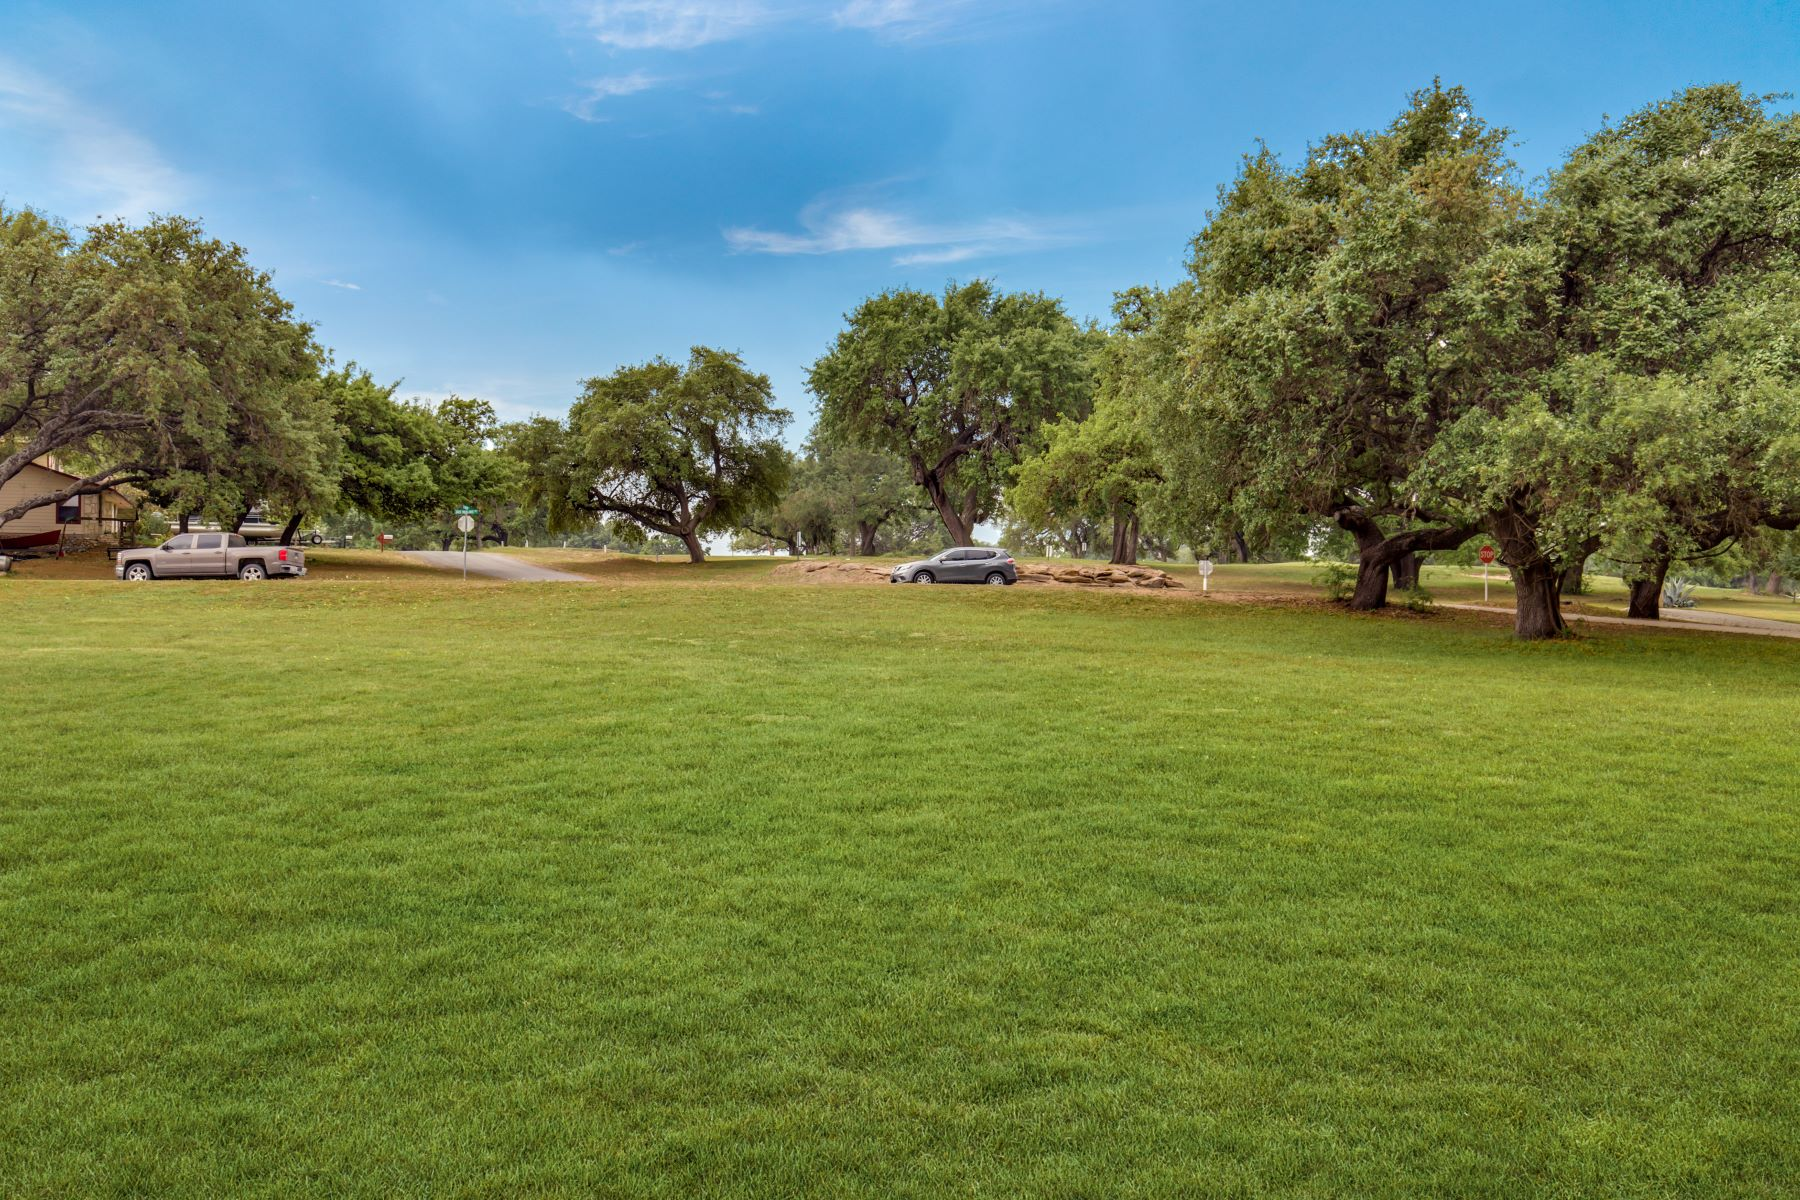 Land for Sale at Serene Golf Course Lot 272 Jack Nicklaus Drive Devine, Texas 78016 United States